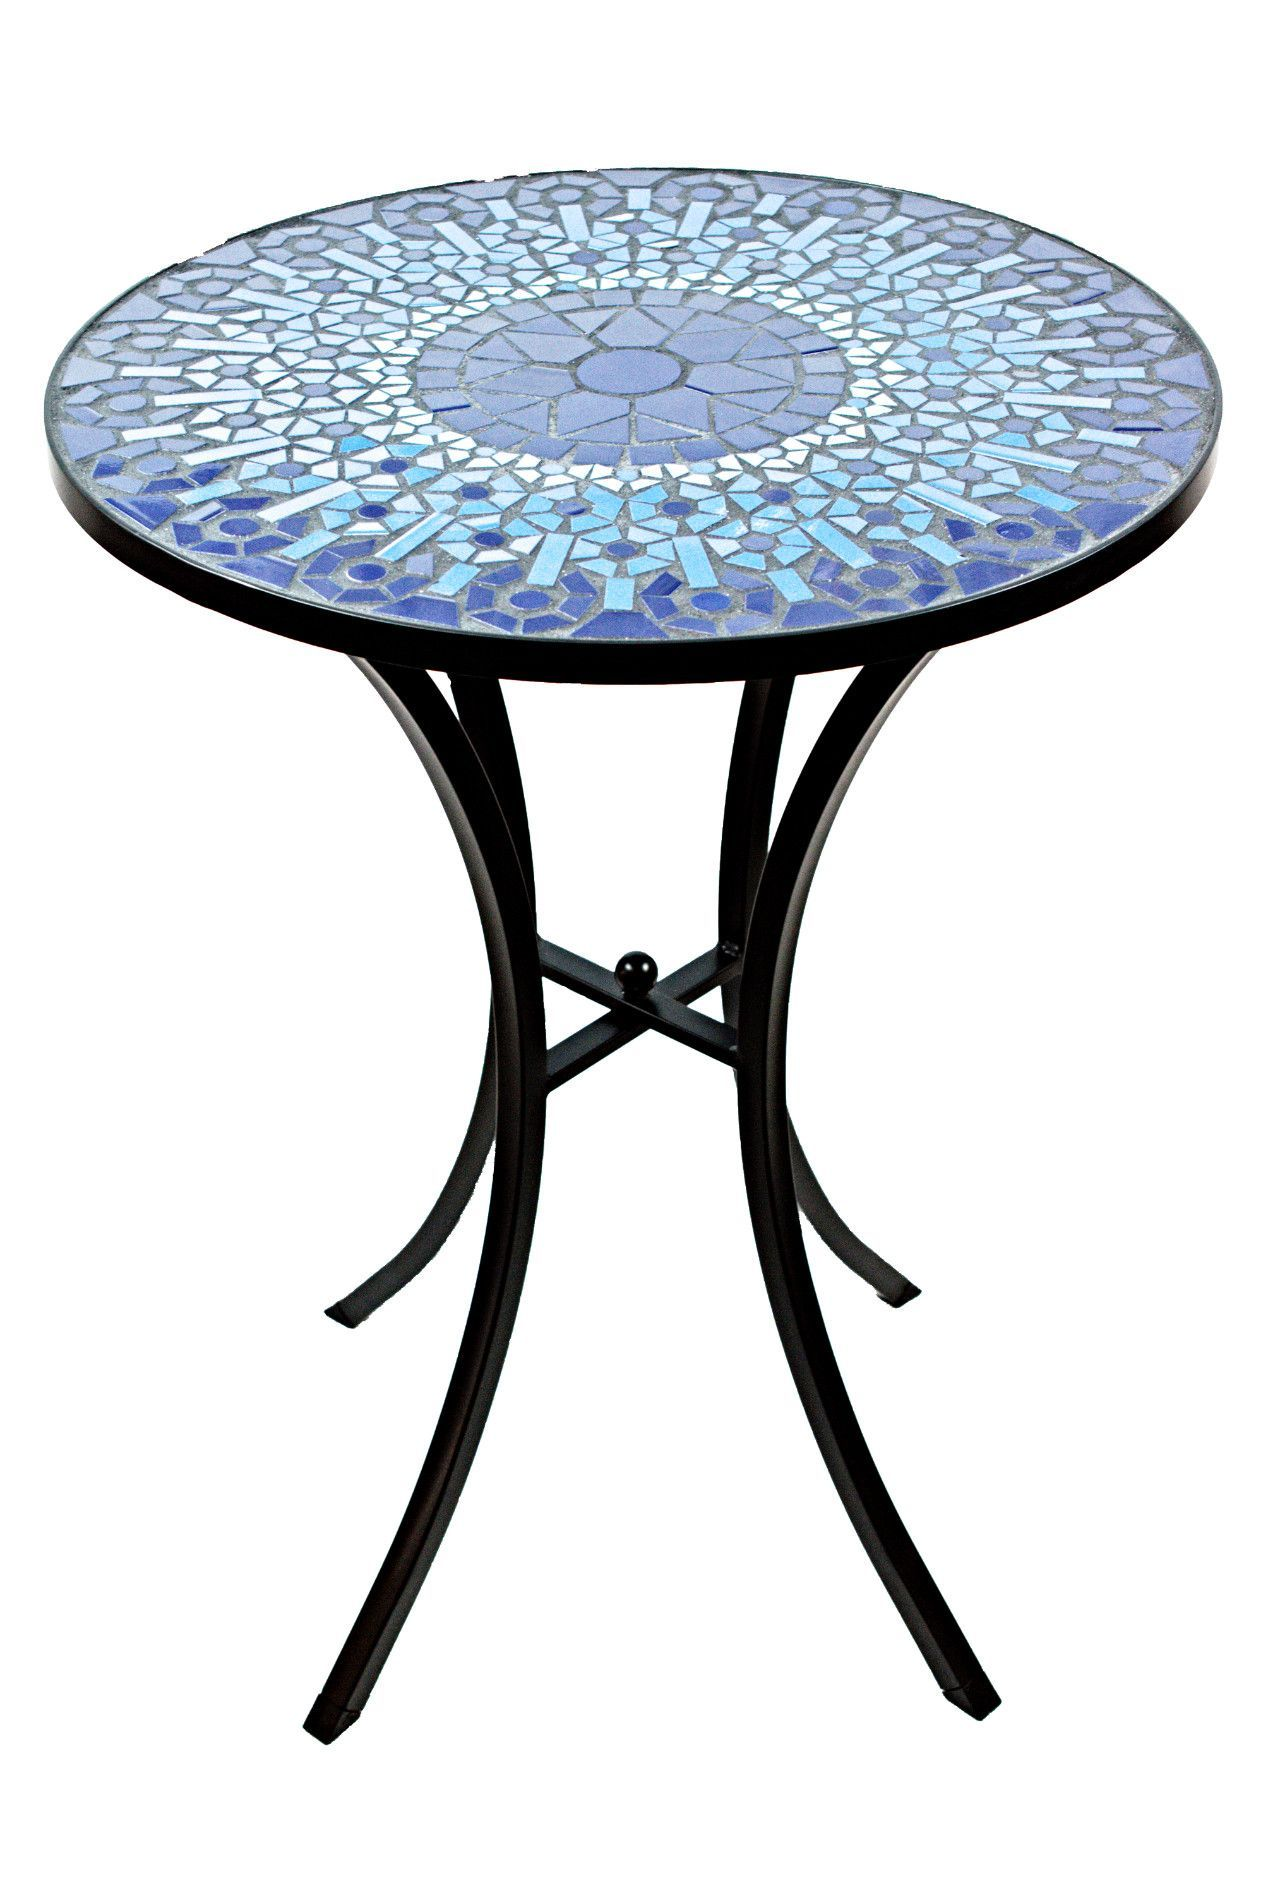 mosaic accent table mosaico art furniture indoor this ceramic tile adds elegance any outdoor decor the intricate pattern handcrafted for impeccable finish and grey coffee